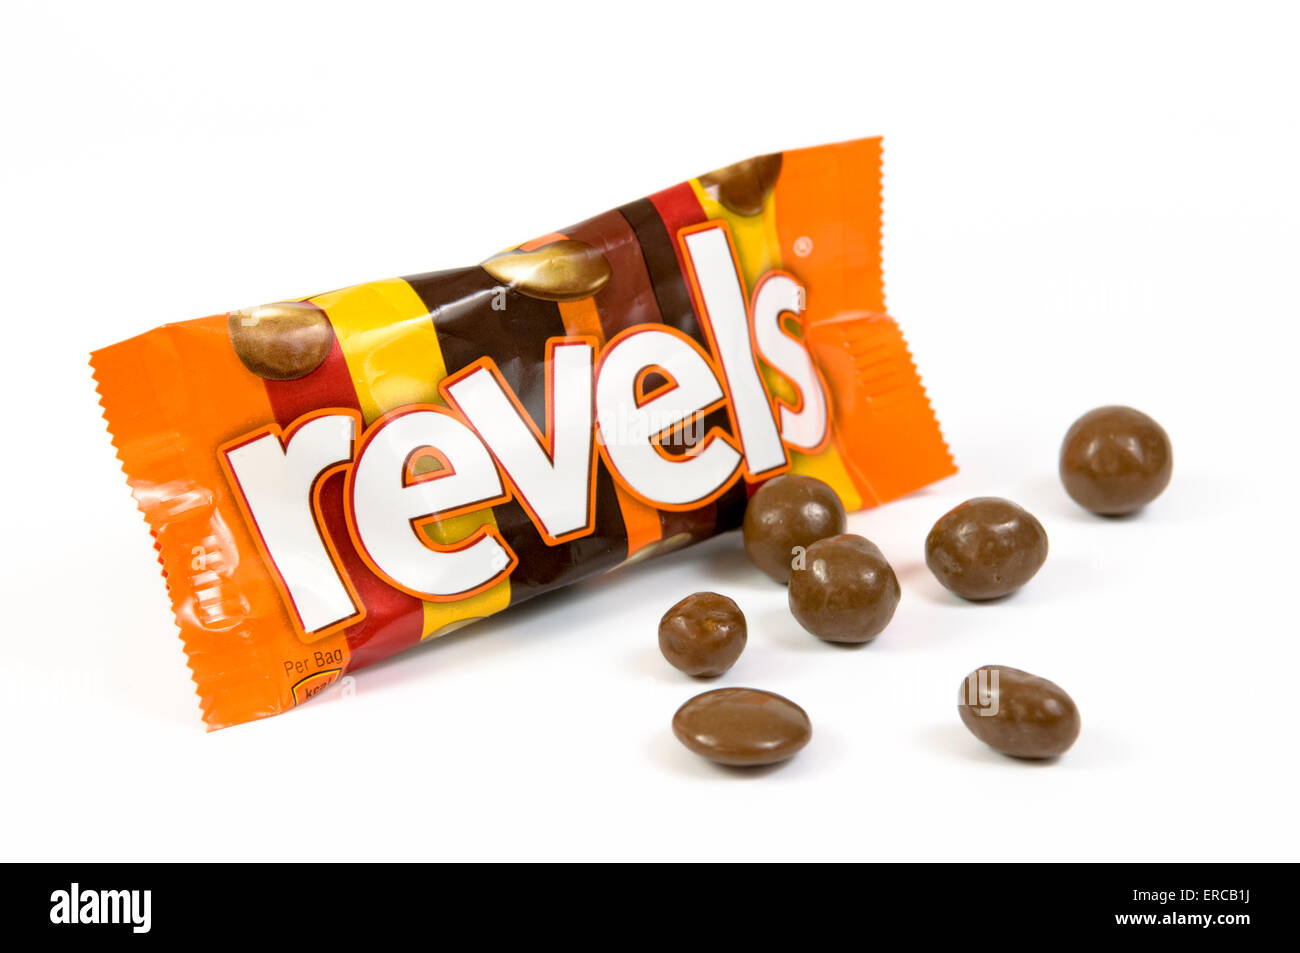 Bag of revels chocolate on white background - Stock Image